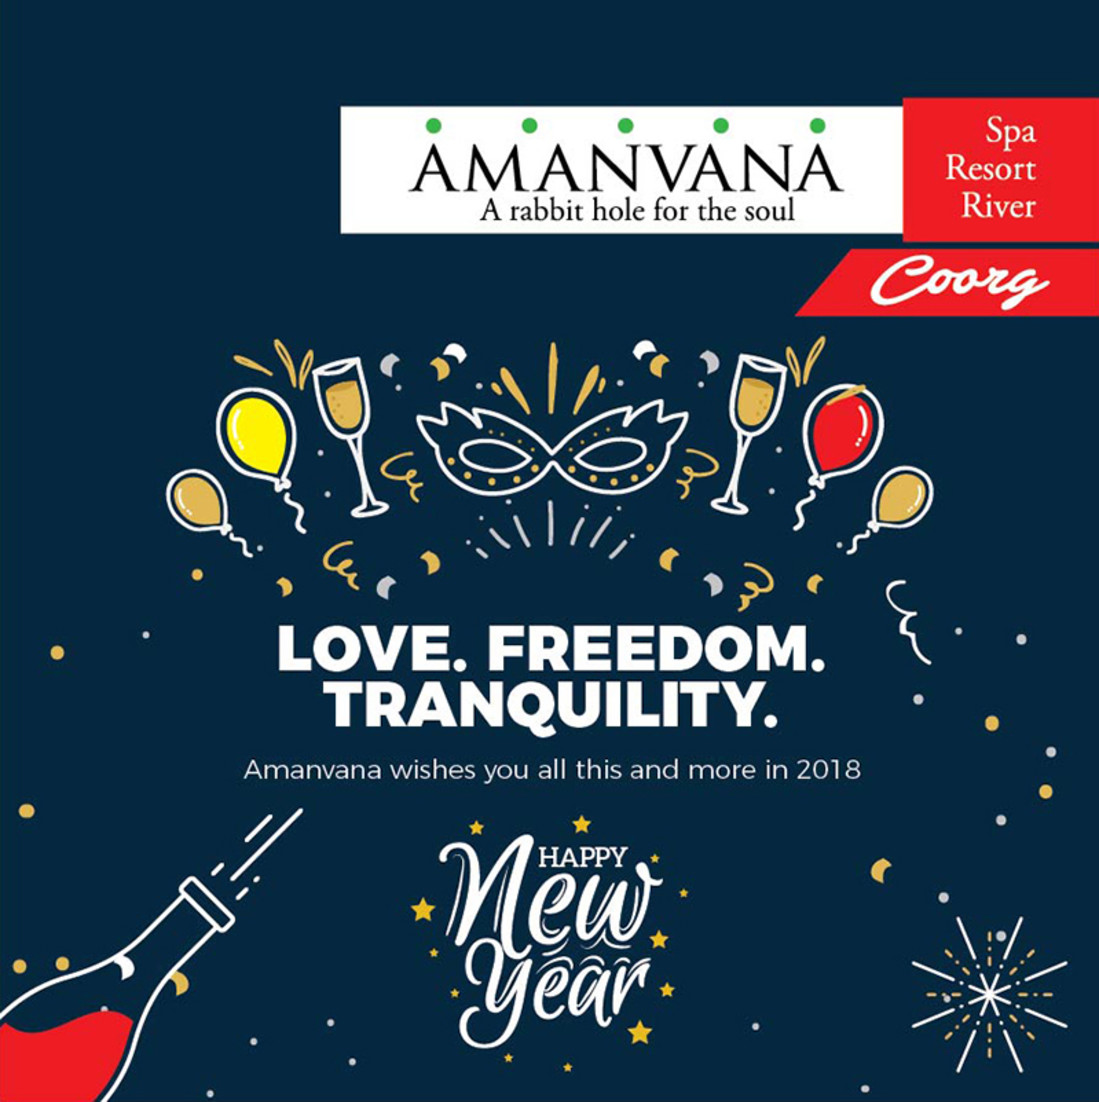 New Year s At Amanvana Spa- Luxury Resort in Coorg